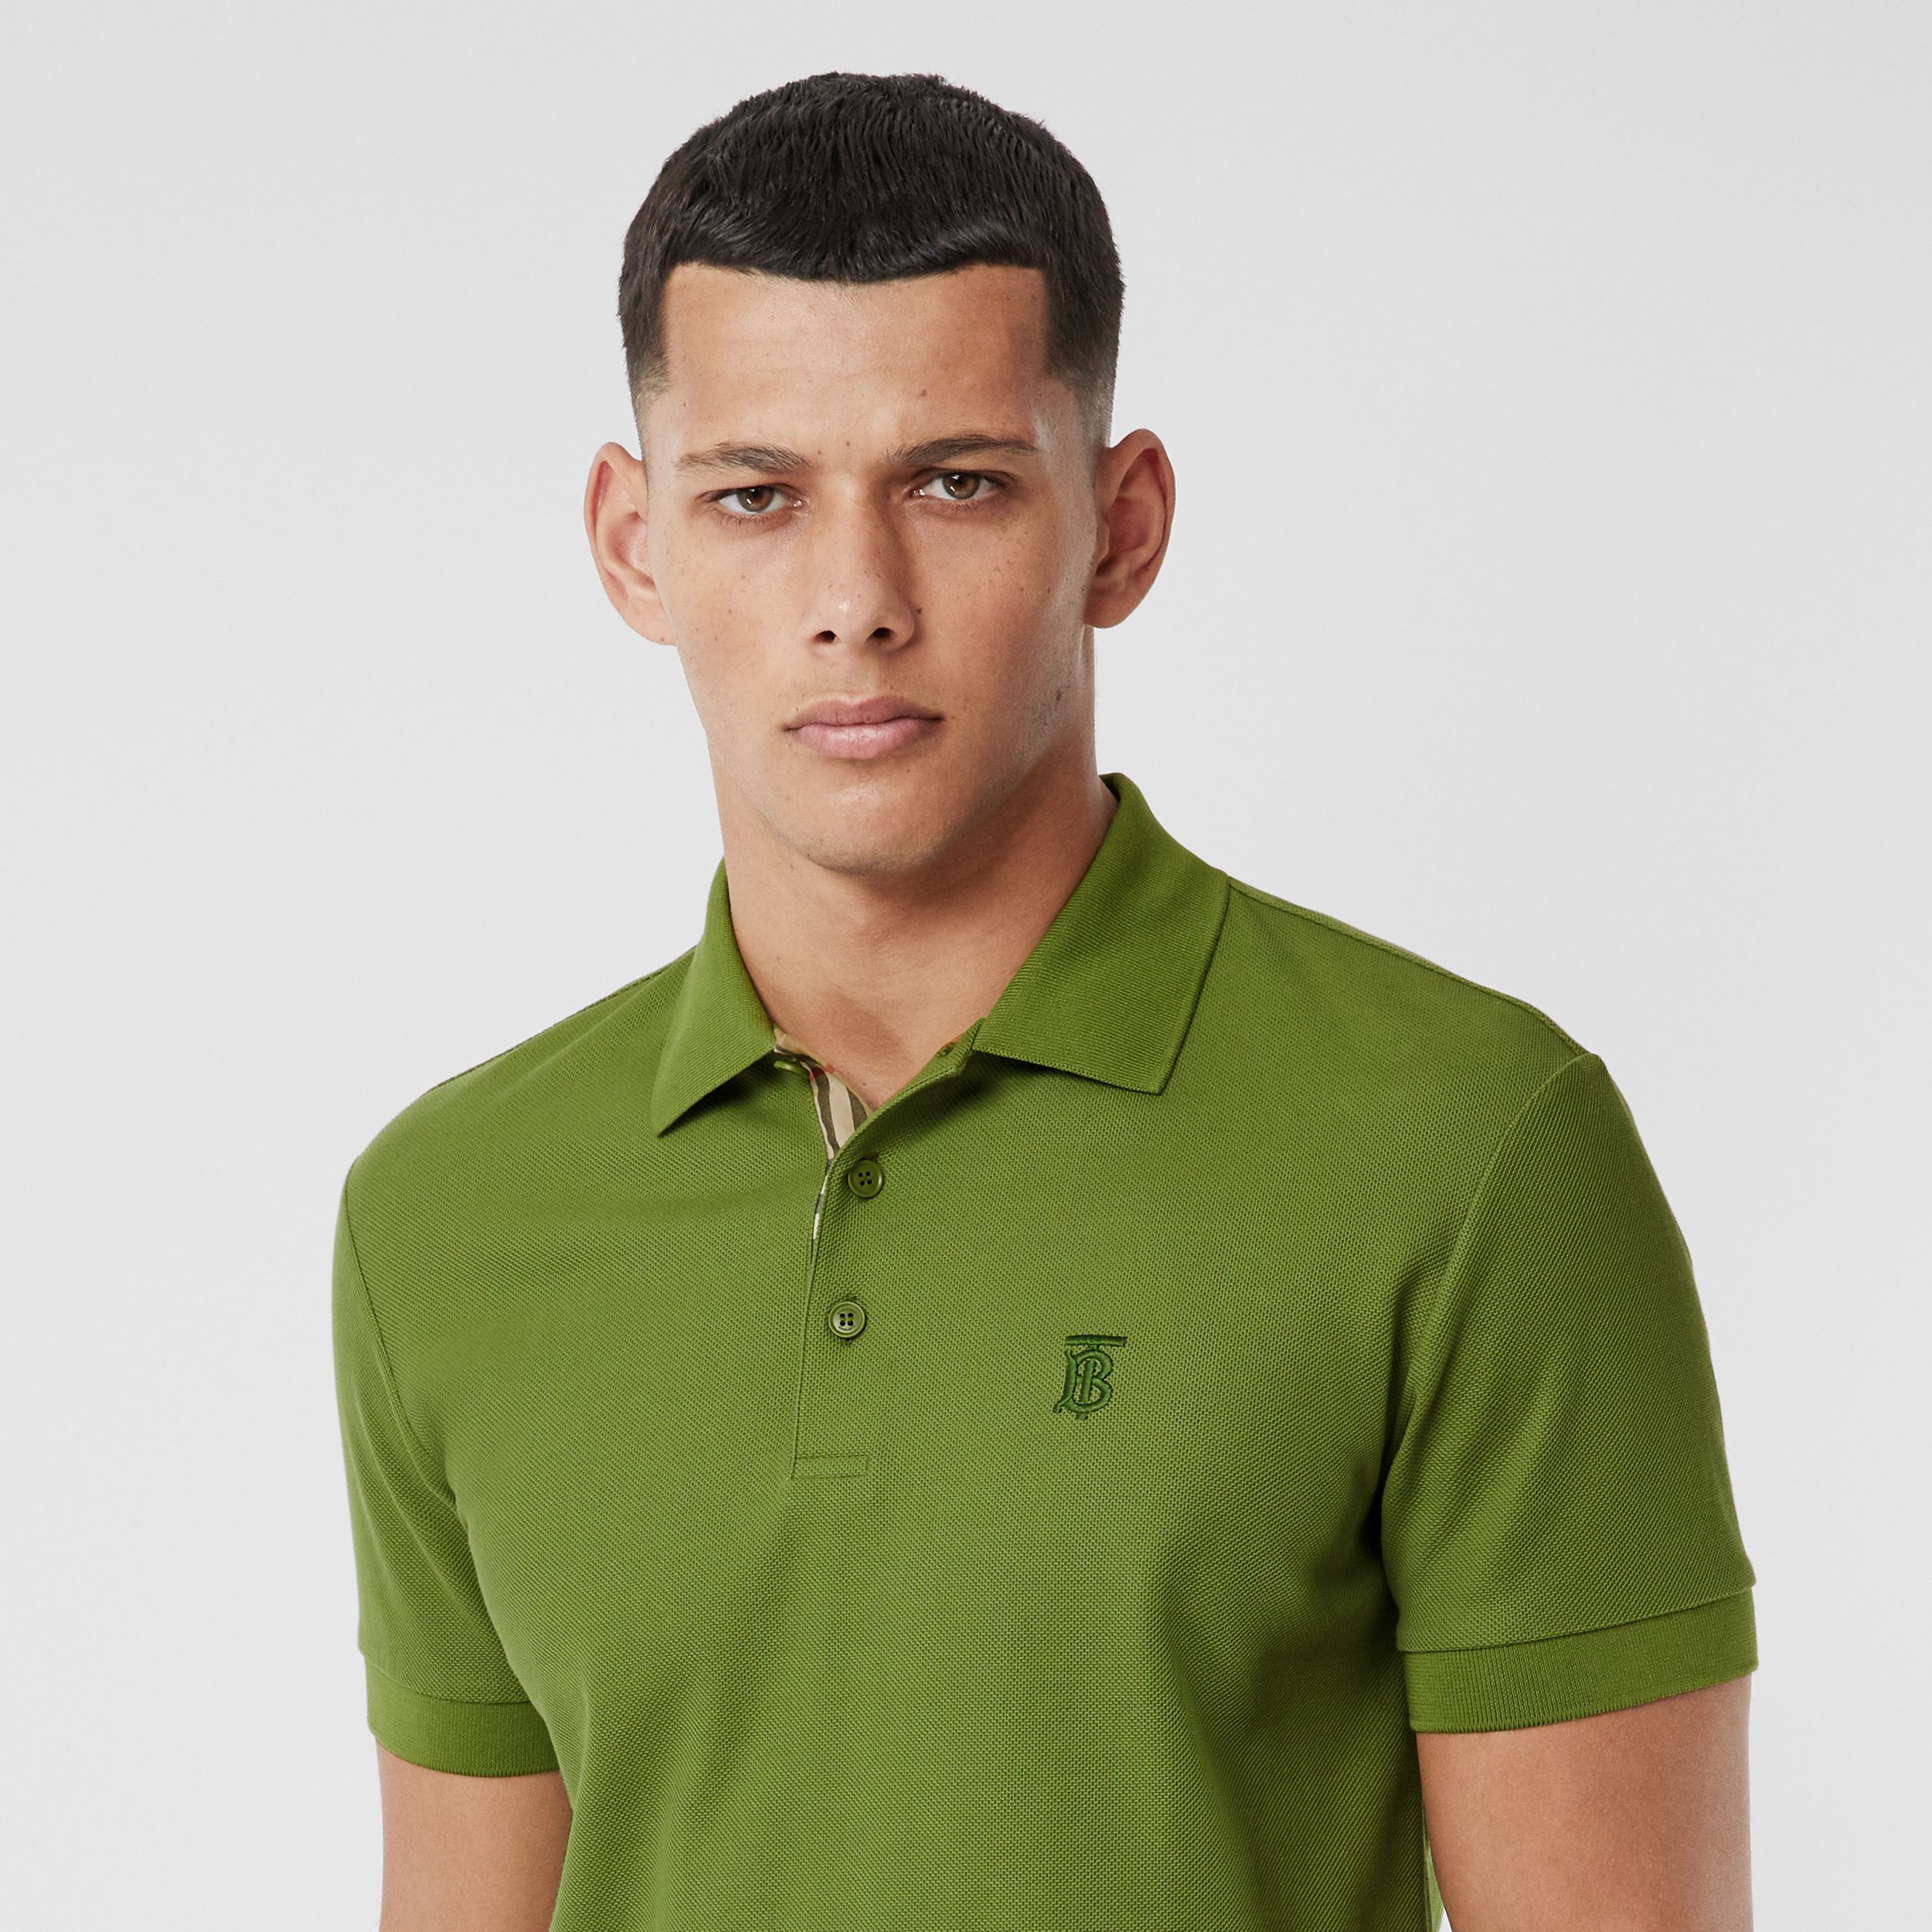 Monogram Motif Cotton Piqué Polo Shirt in Cedar Green - Men | Burberry - 2